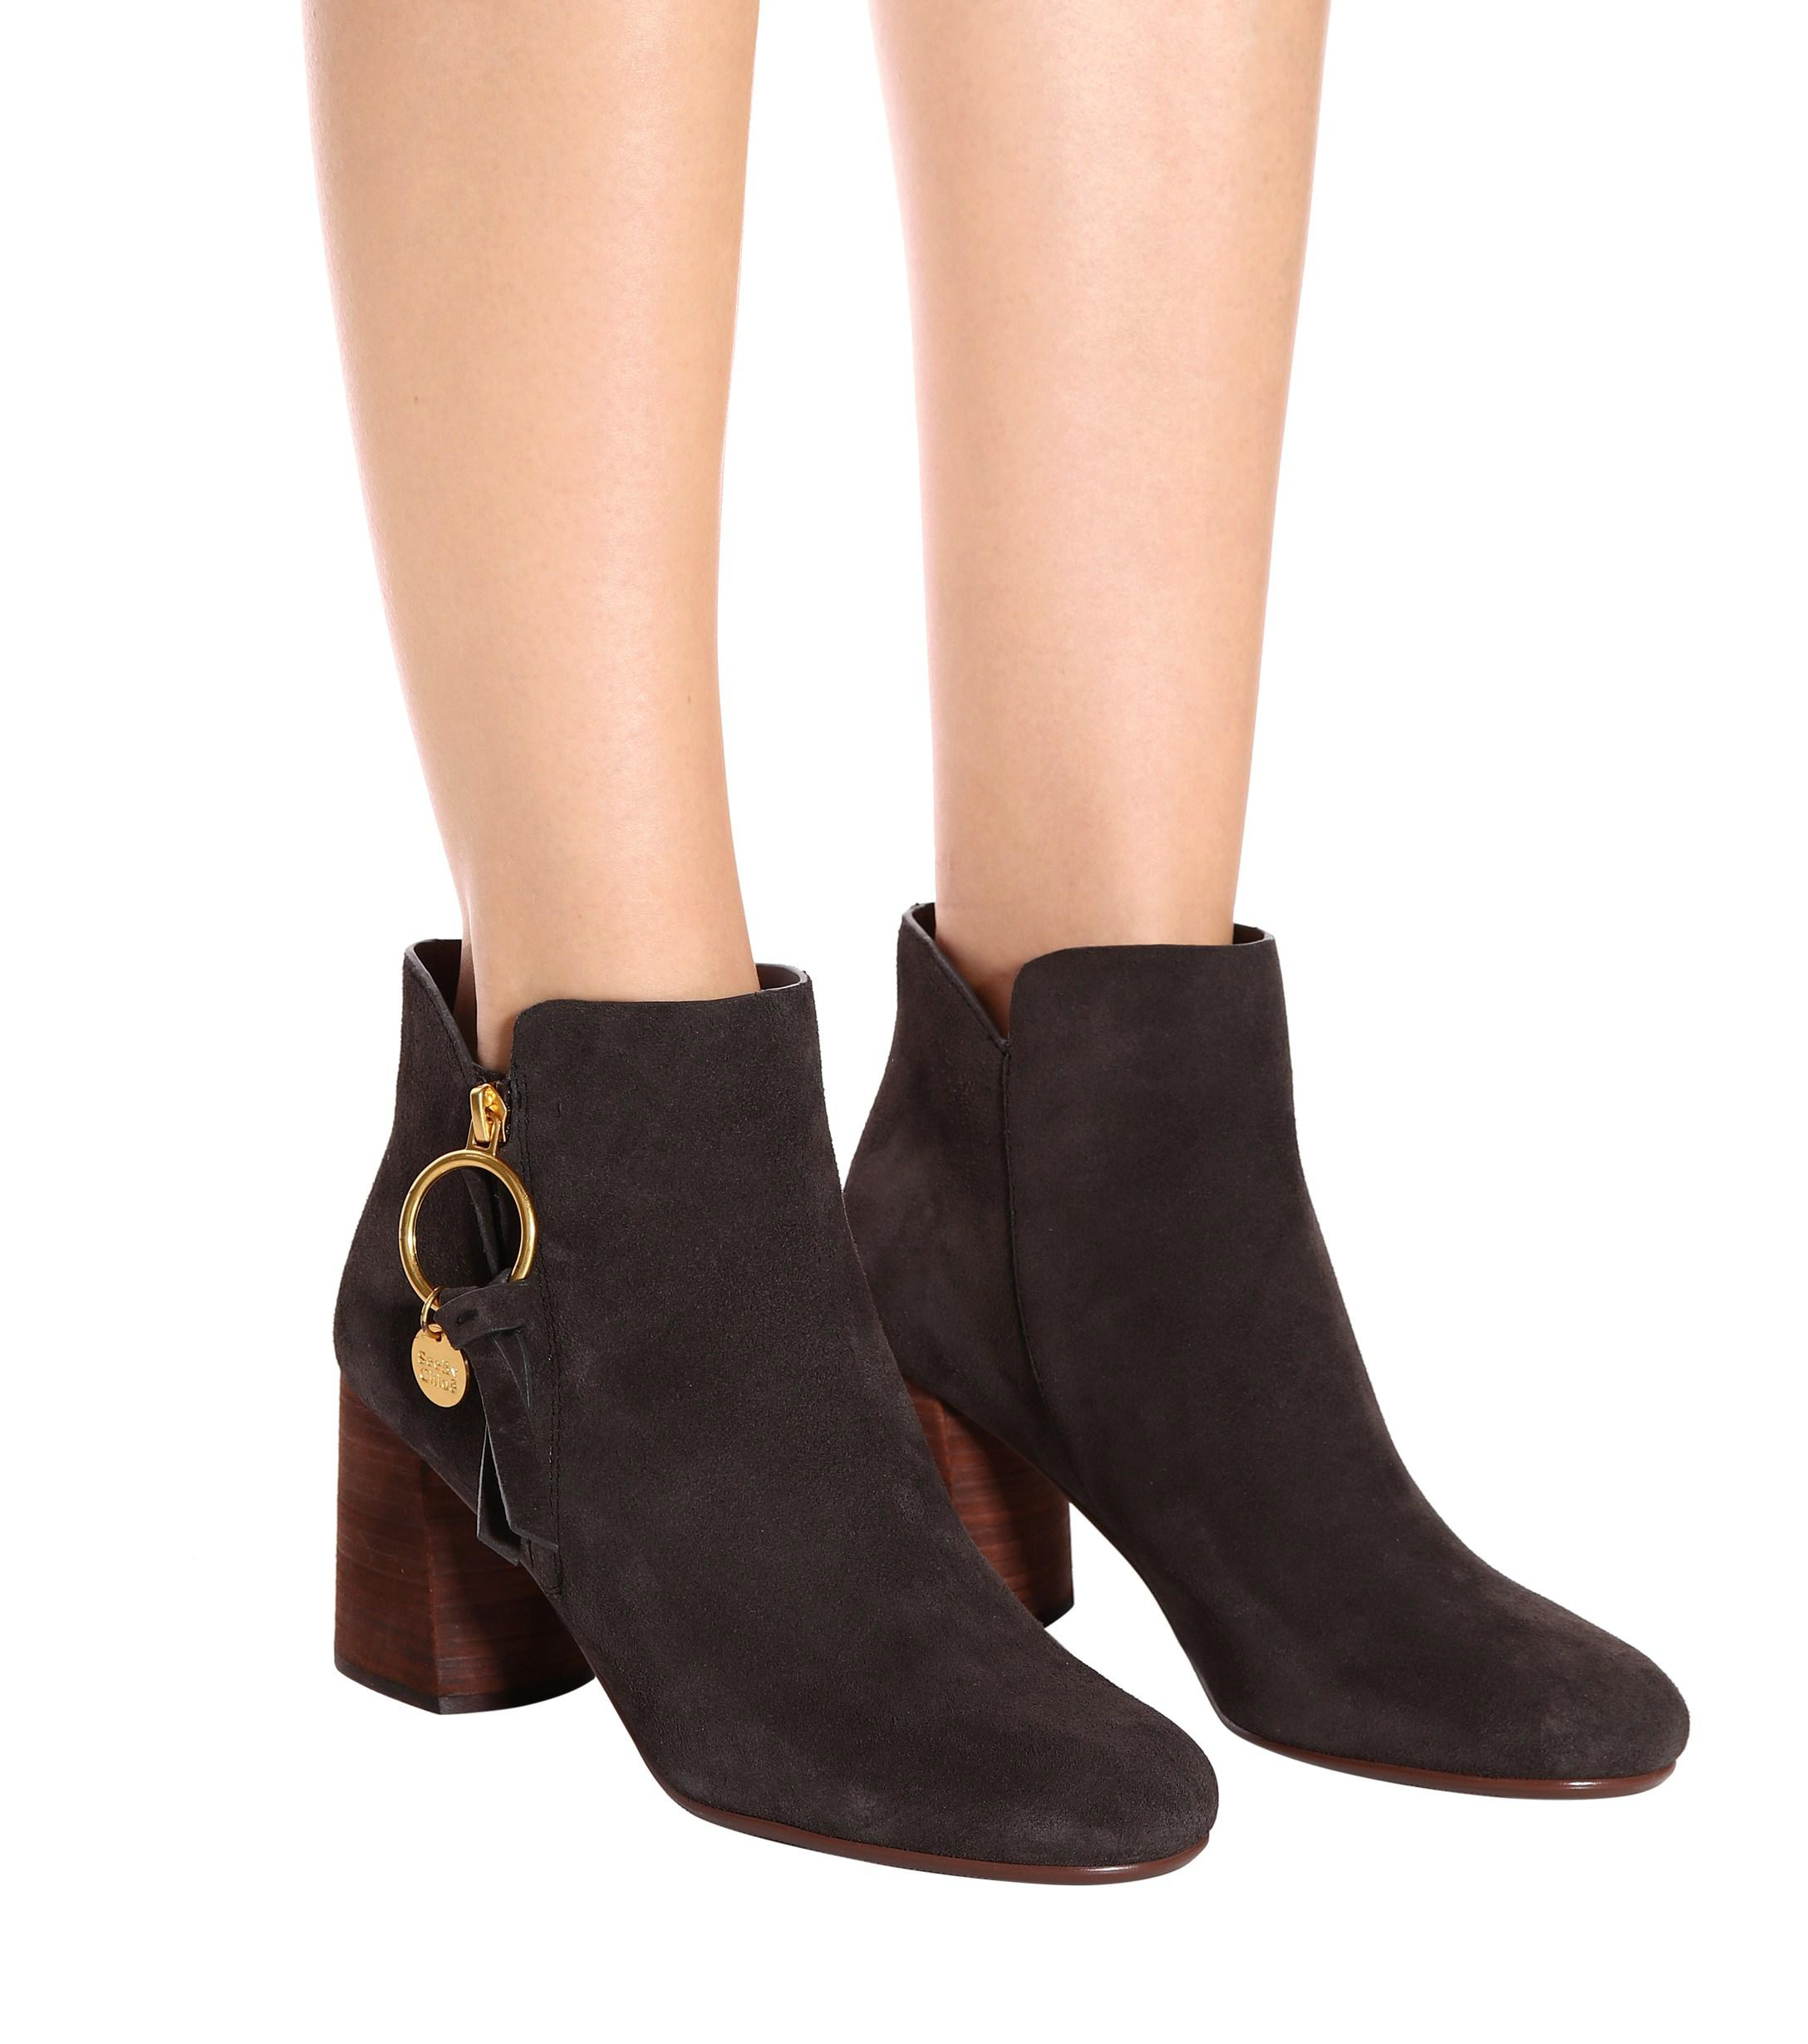 b01c84f254bc4 Lyst - See By Chloé Louise Medium Suede Ankle Boots in Brown